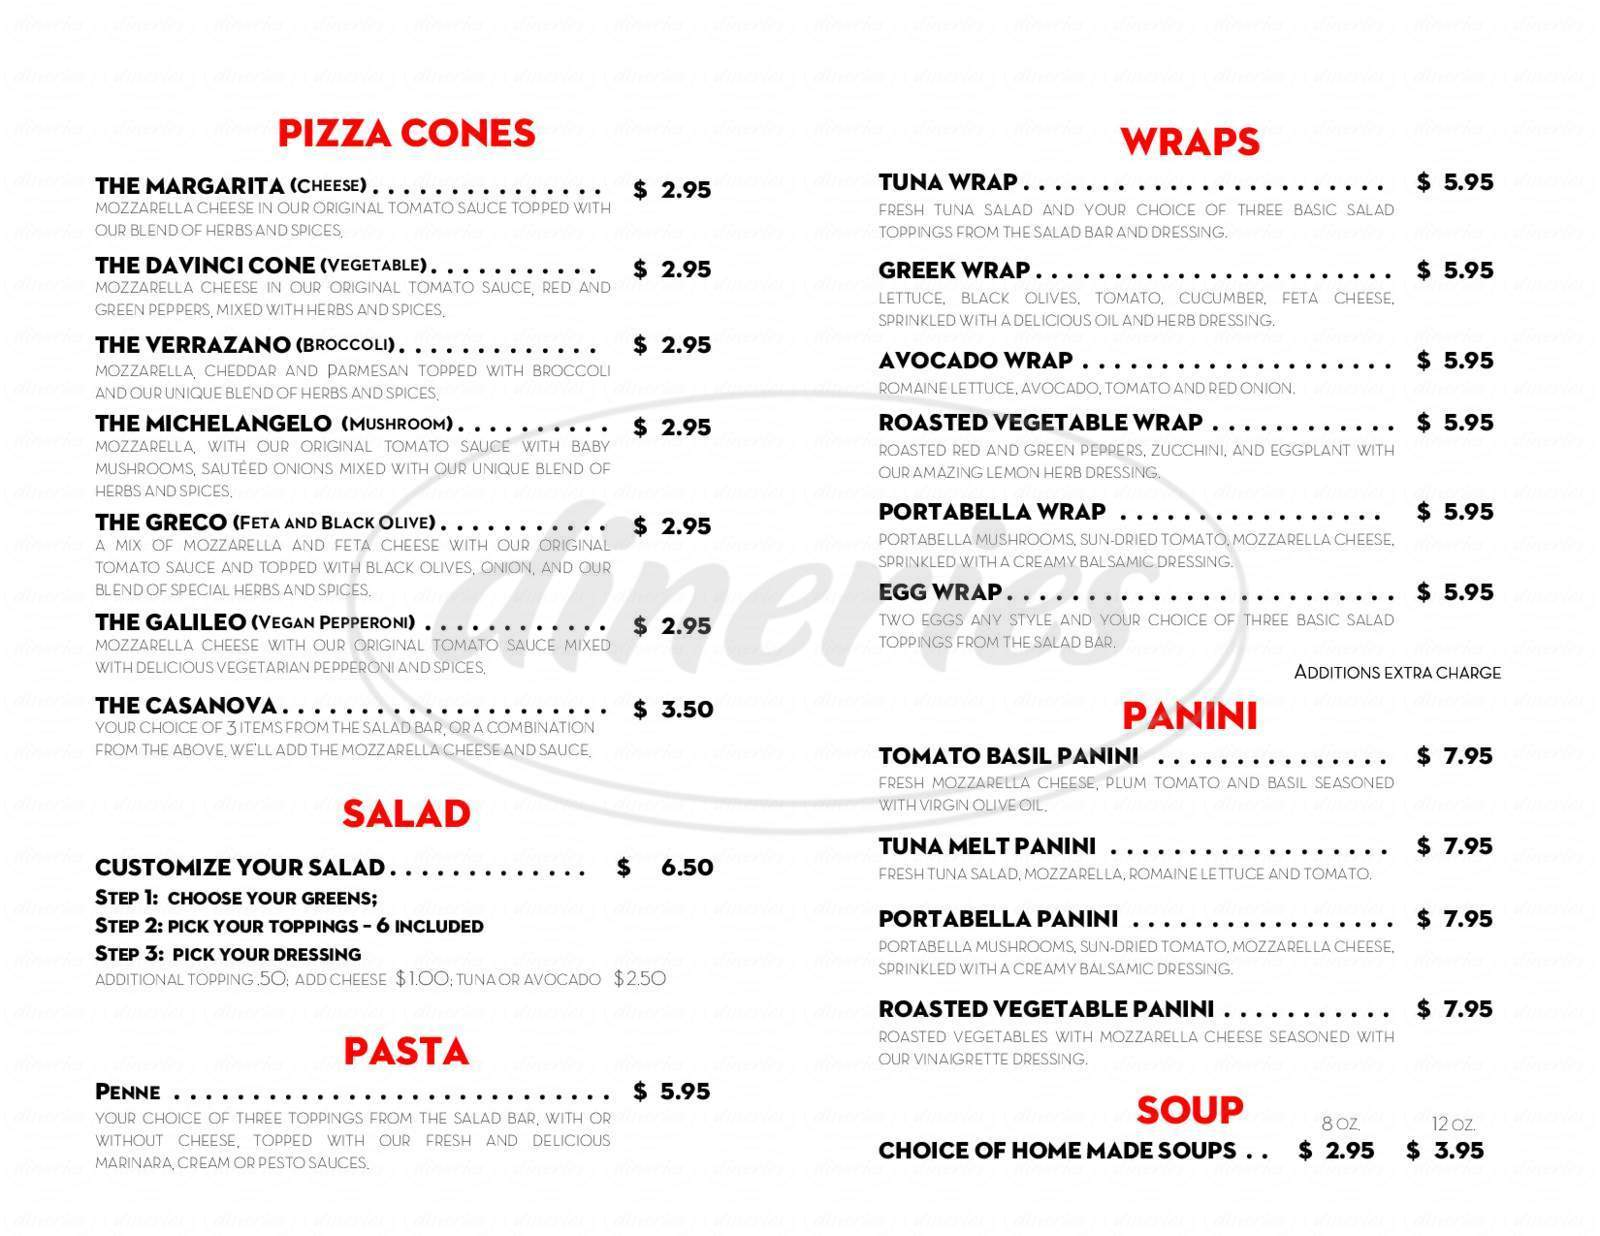 menu for DaVinci Cones